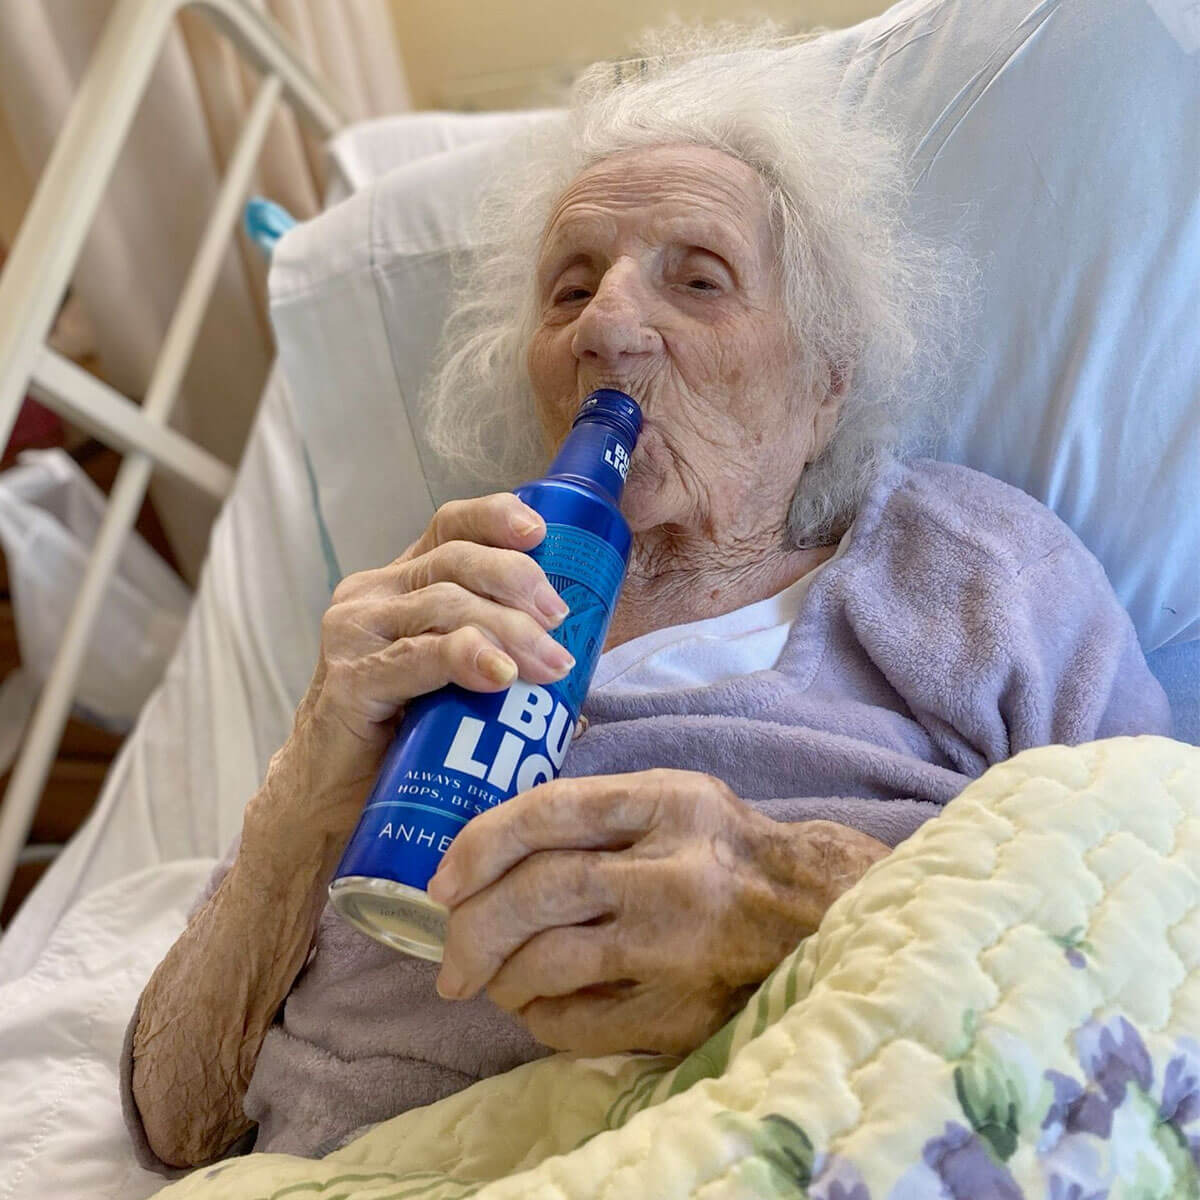 A feisty Polish 103 year-old grandmother, Jennie Stejna, contracted COVID-19 while in a nursing home but she beat the odds and celebrated the feat with a cold beer.